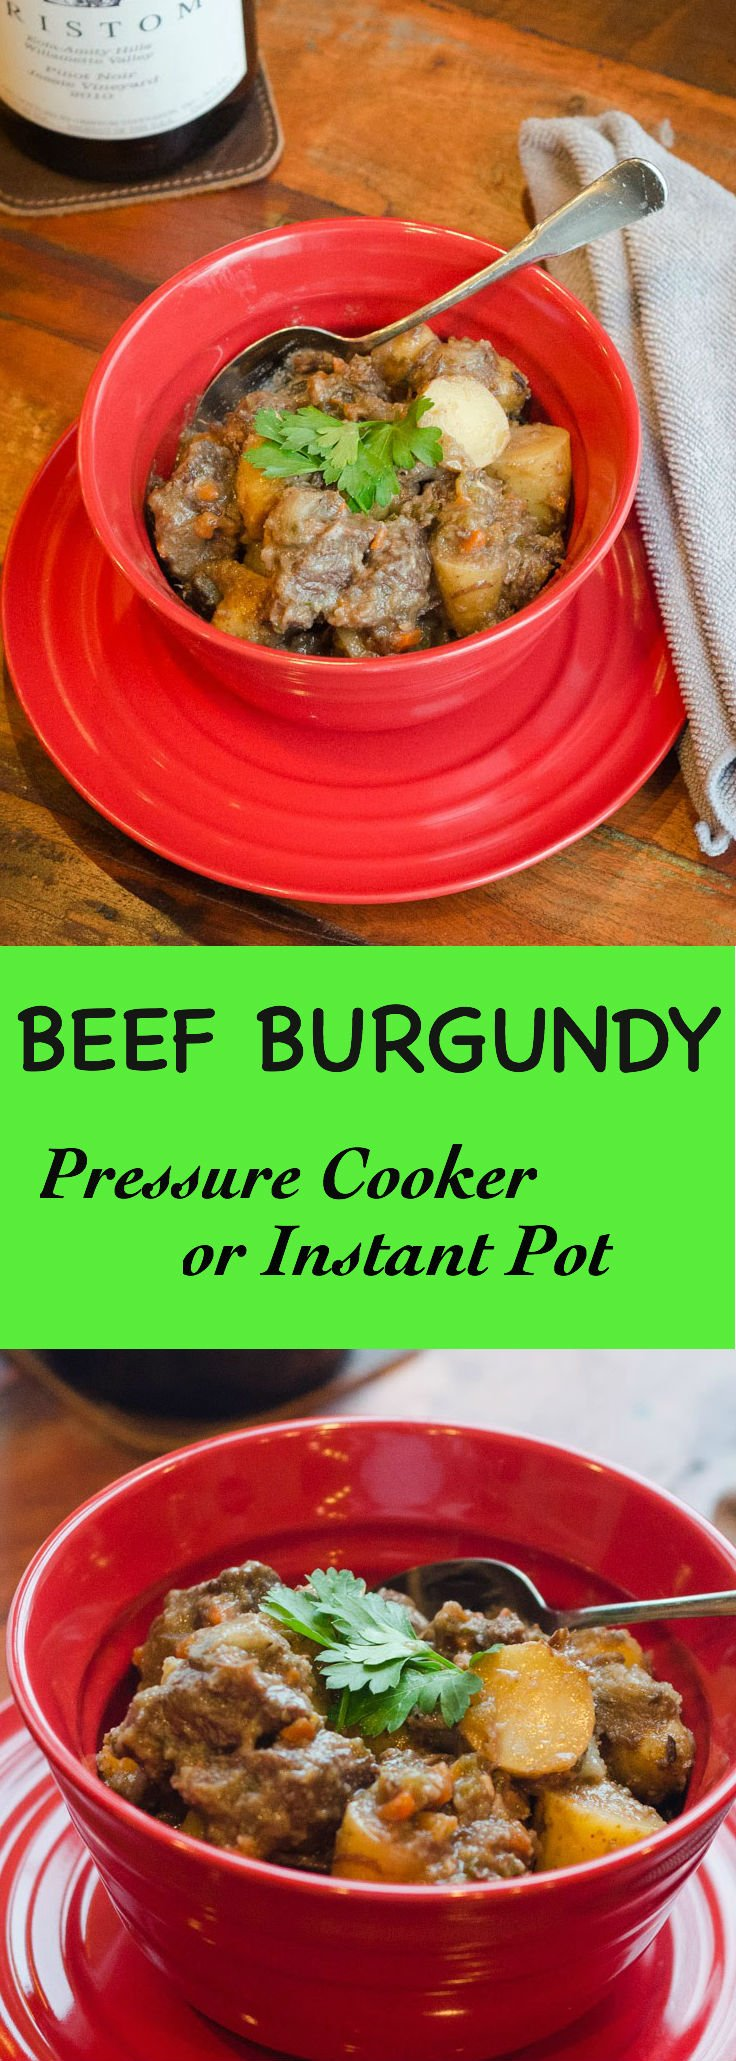 Beef Burgundy in a Pressure Cooker or Instant Pot